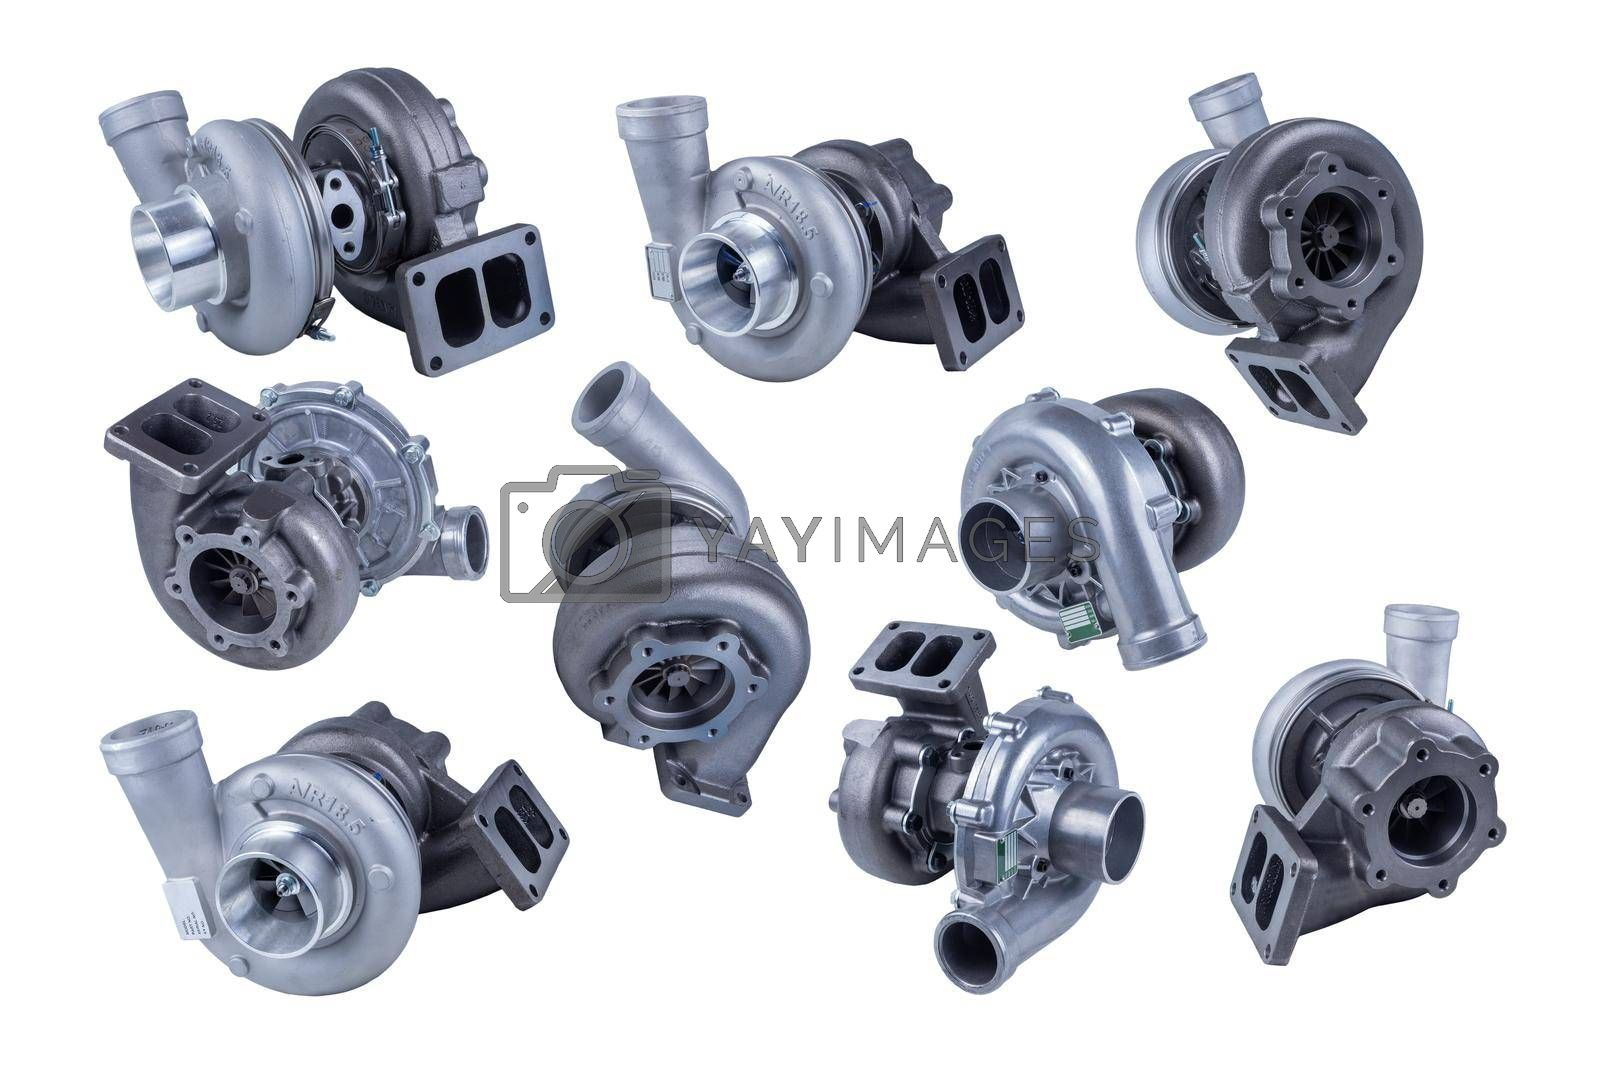 Royalty free image of set of several new modern truck turbocharger isolated on white background. turbocharger to increase the power of the car engine. by forester